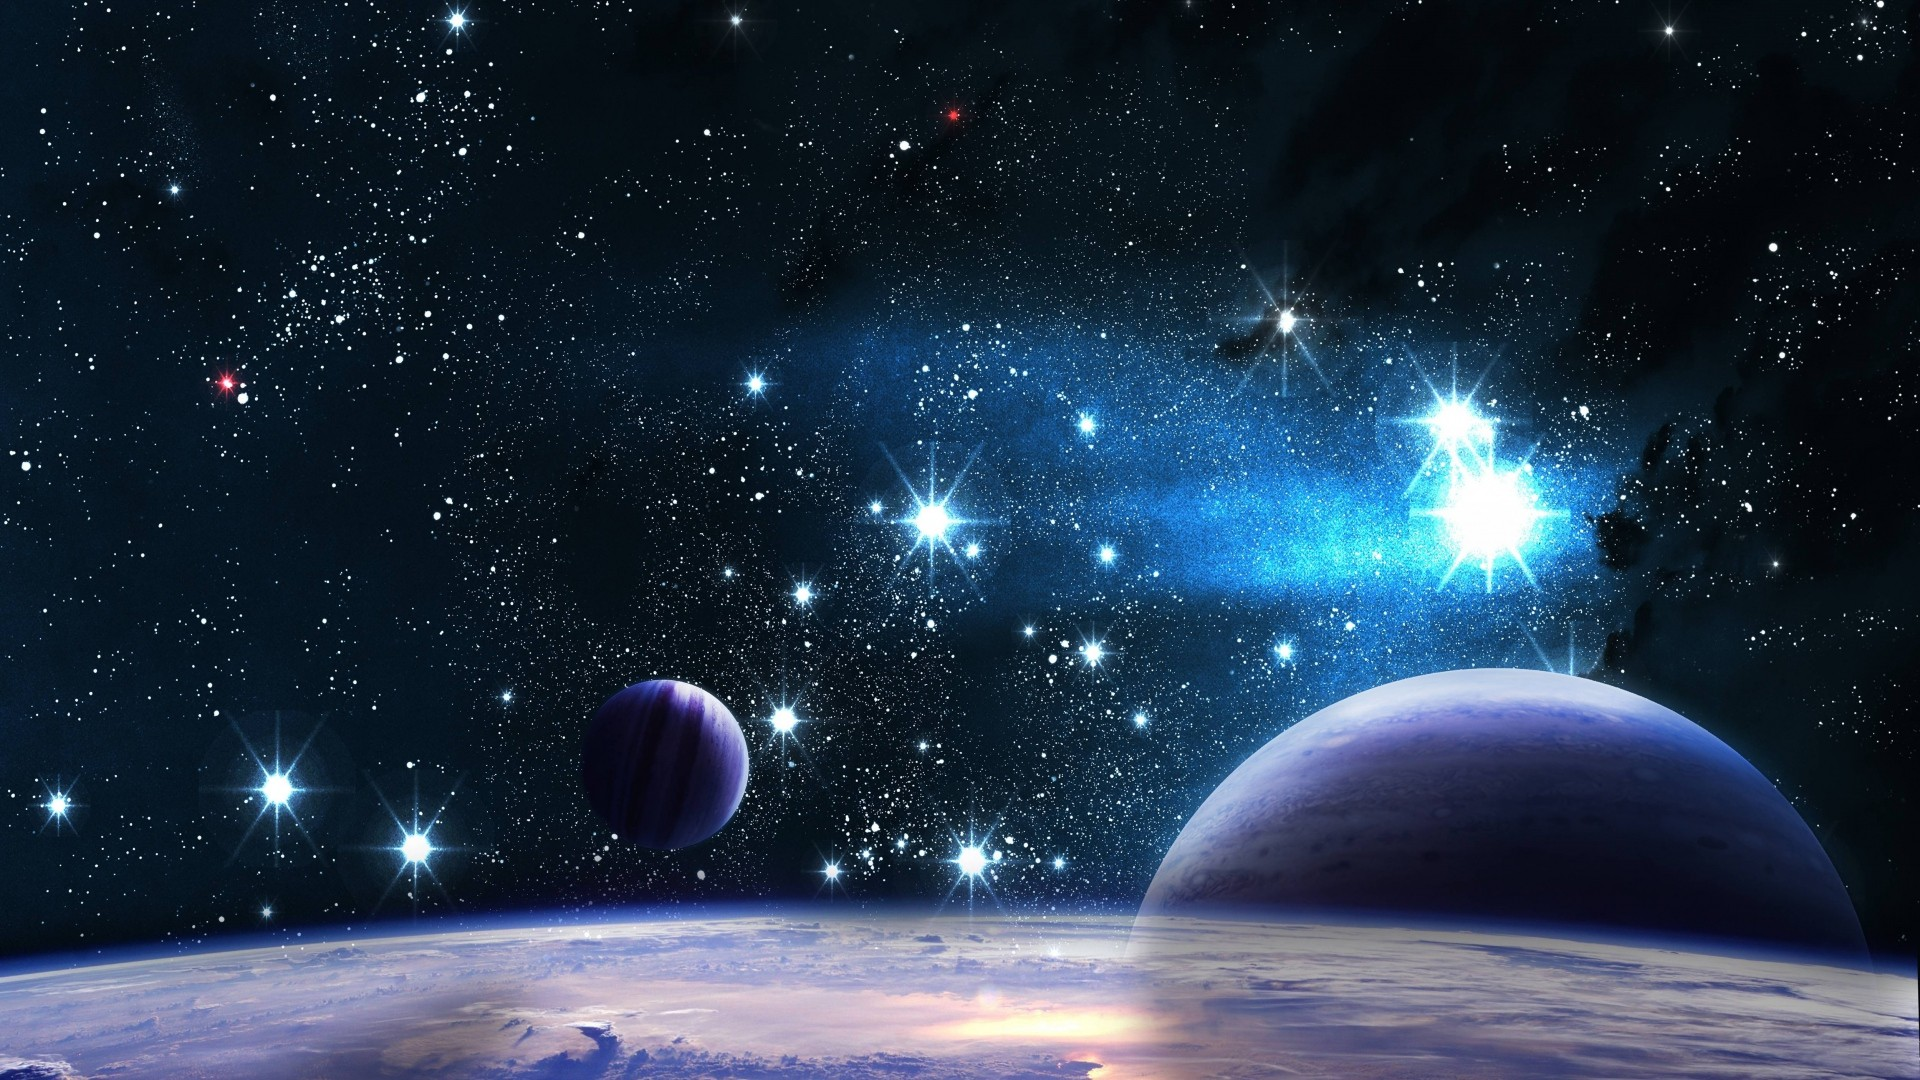 1080p wallpaper Space ·① Download free amazing full HD ...